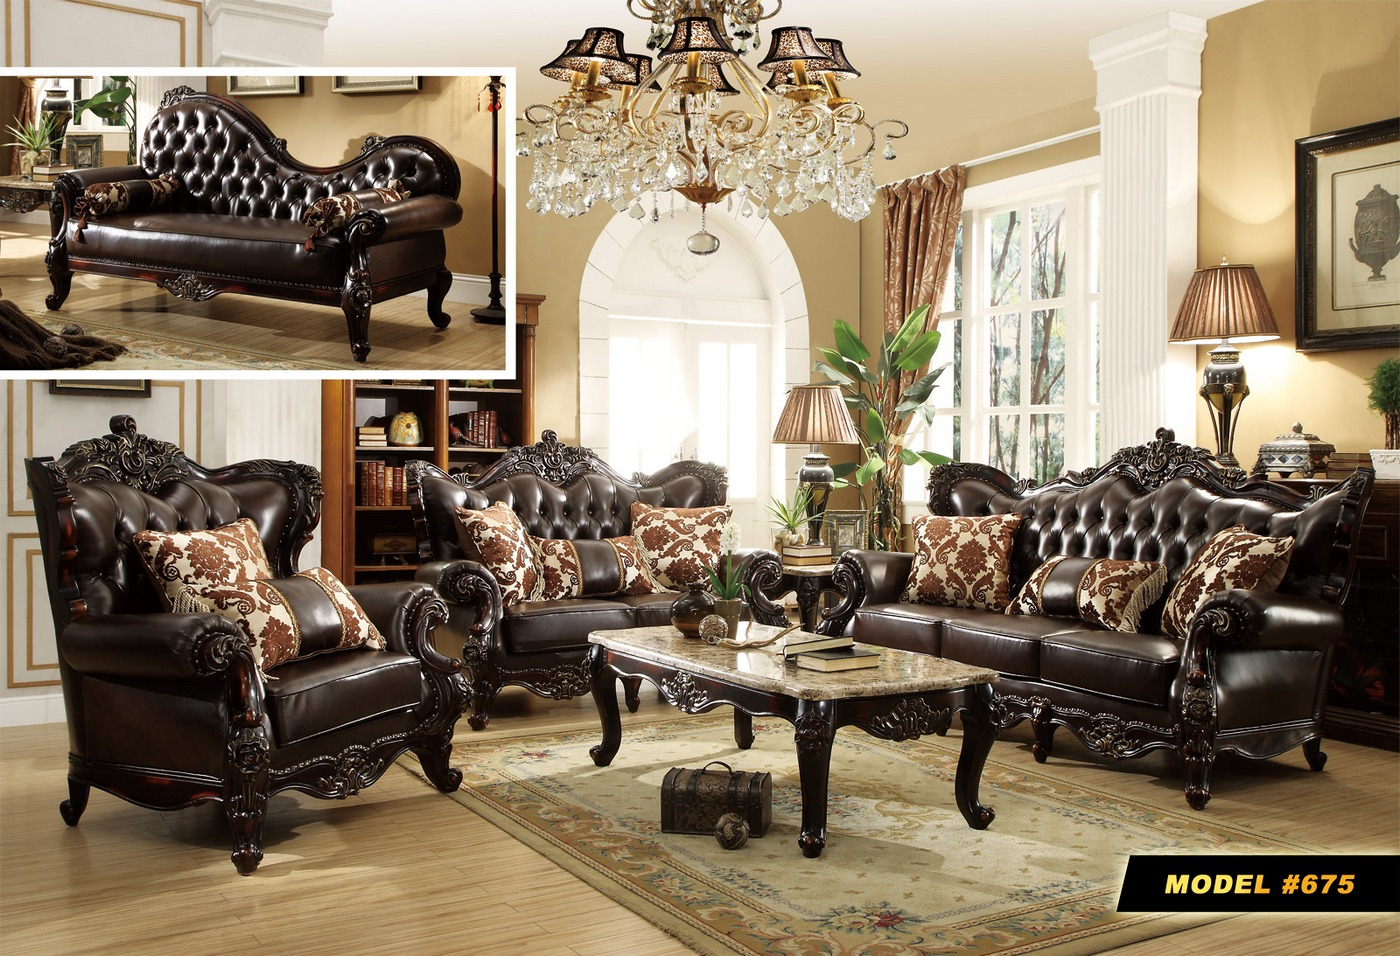 Barcelona Dark Brown Tufted Leather Chaise With Carved